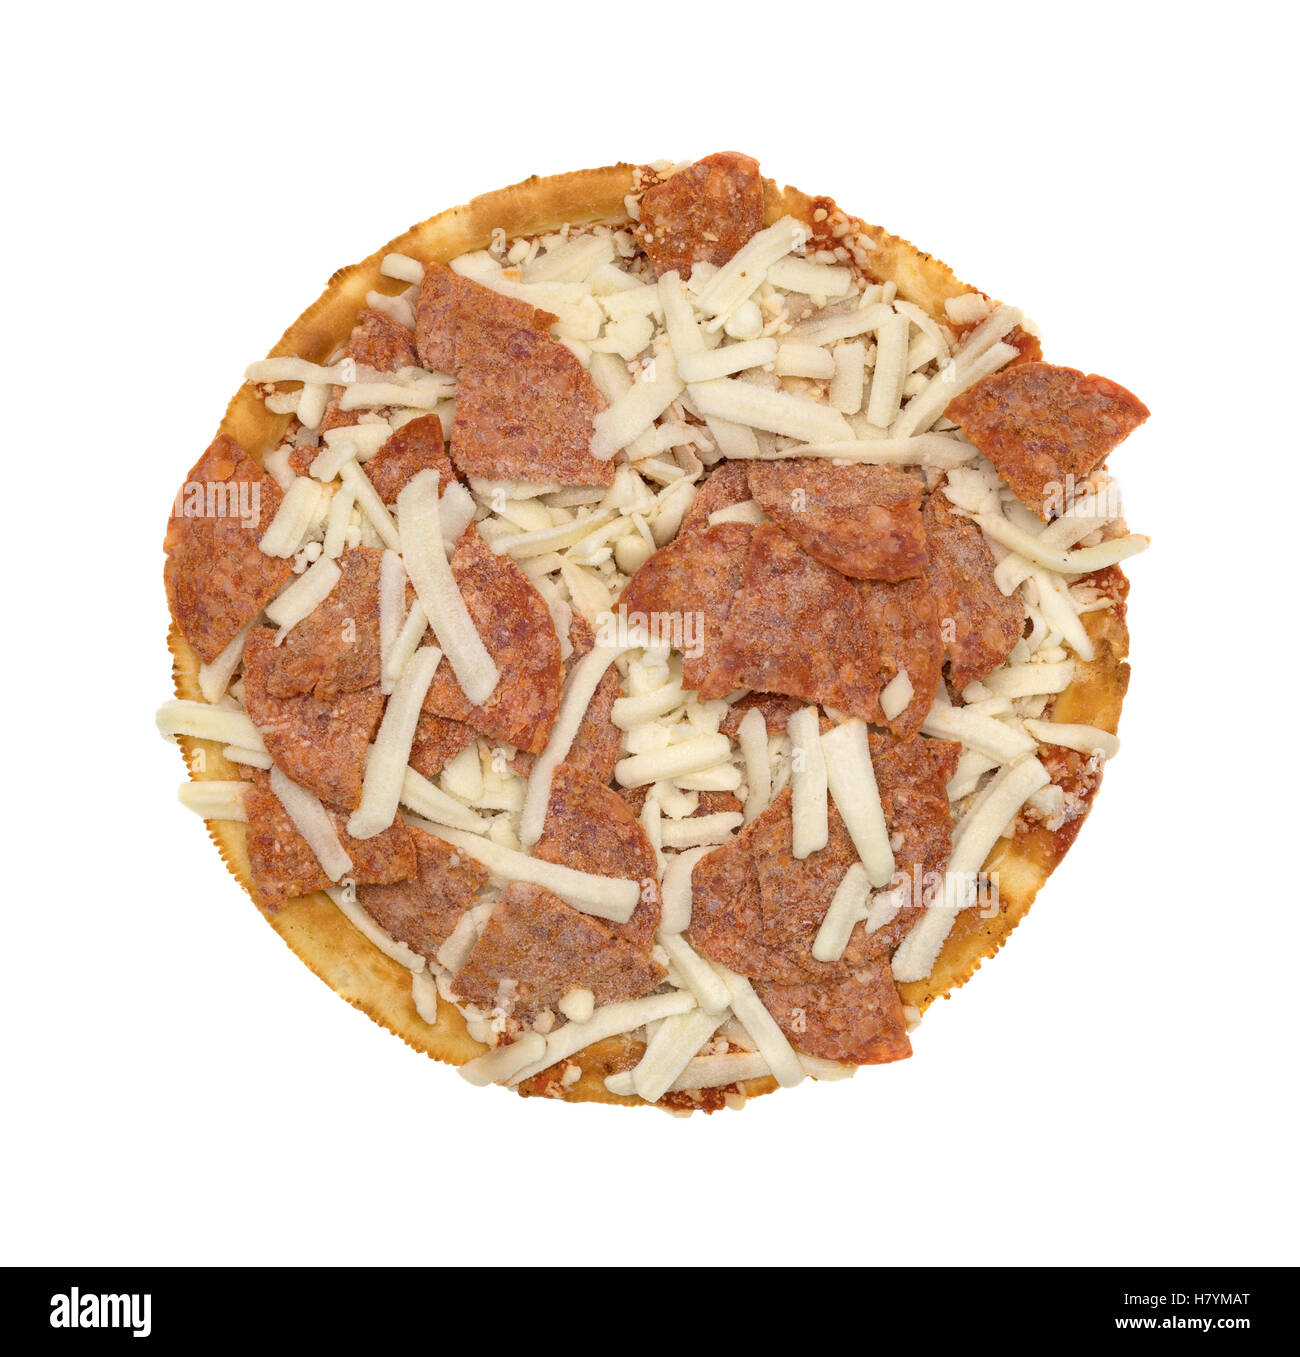 Top view of a frozen pepperoni pizza with mozzarella cheese isolated on a white background. - Stock Image